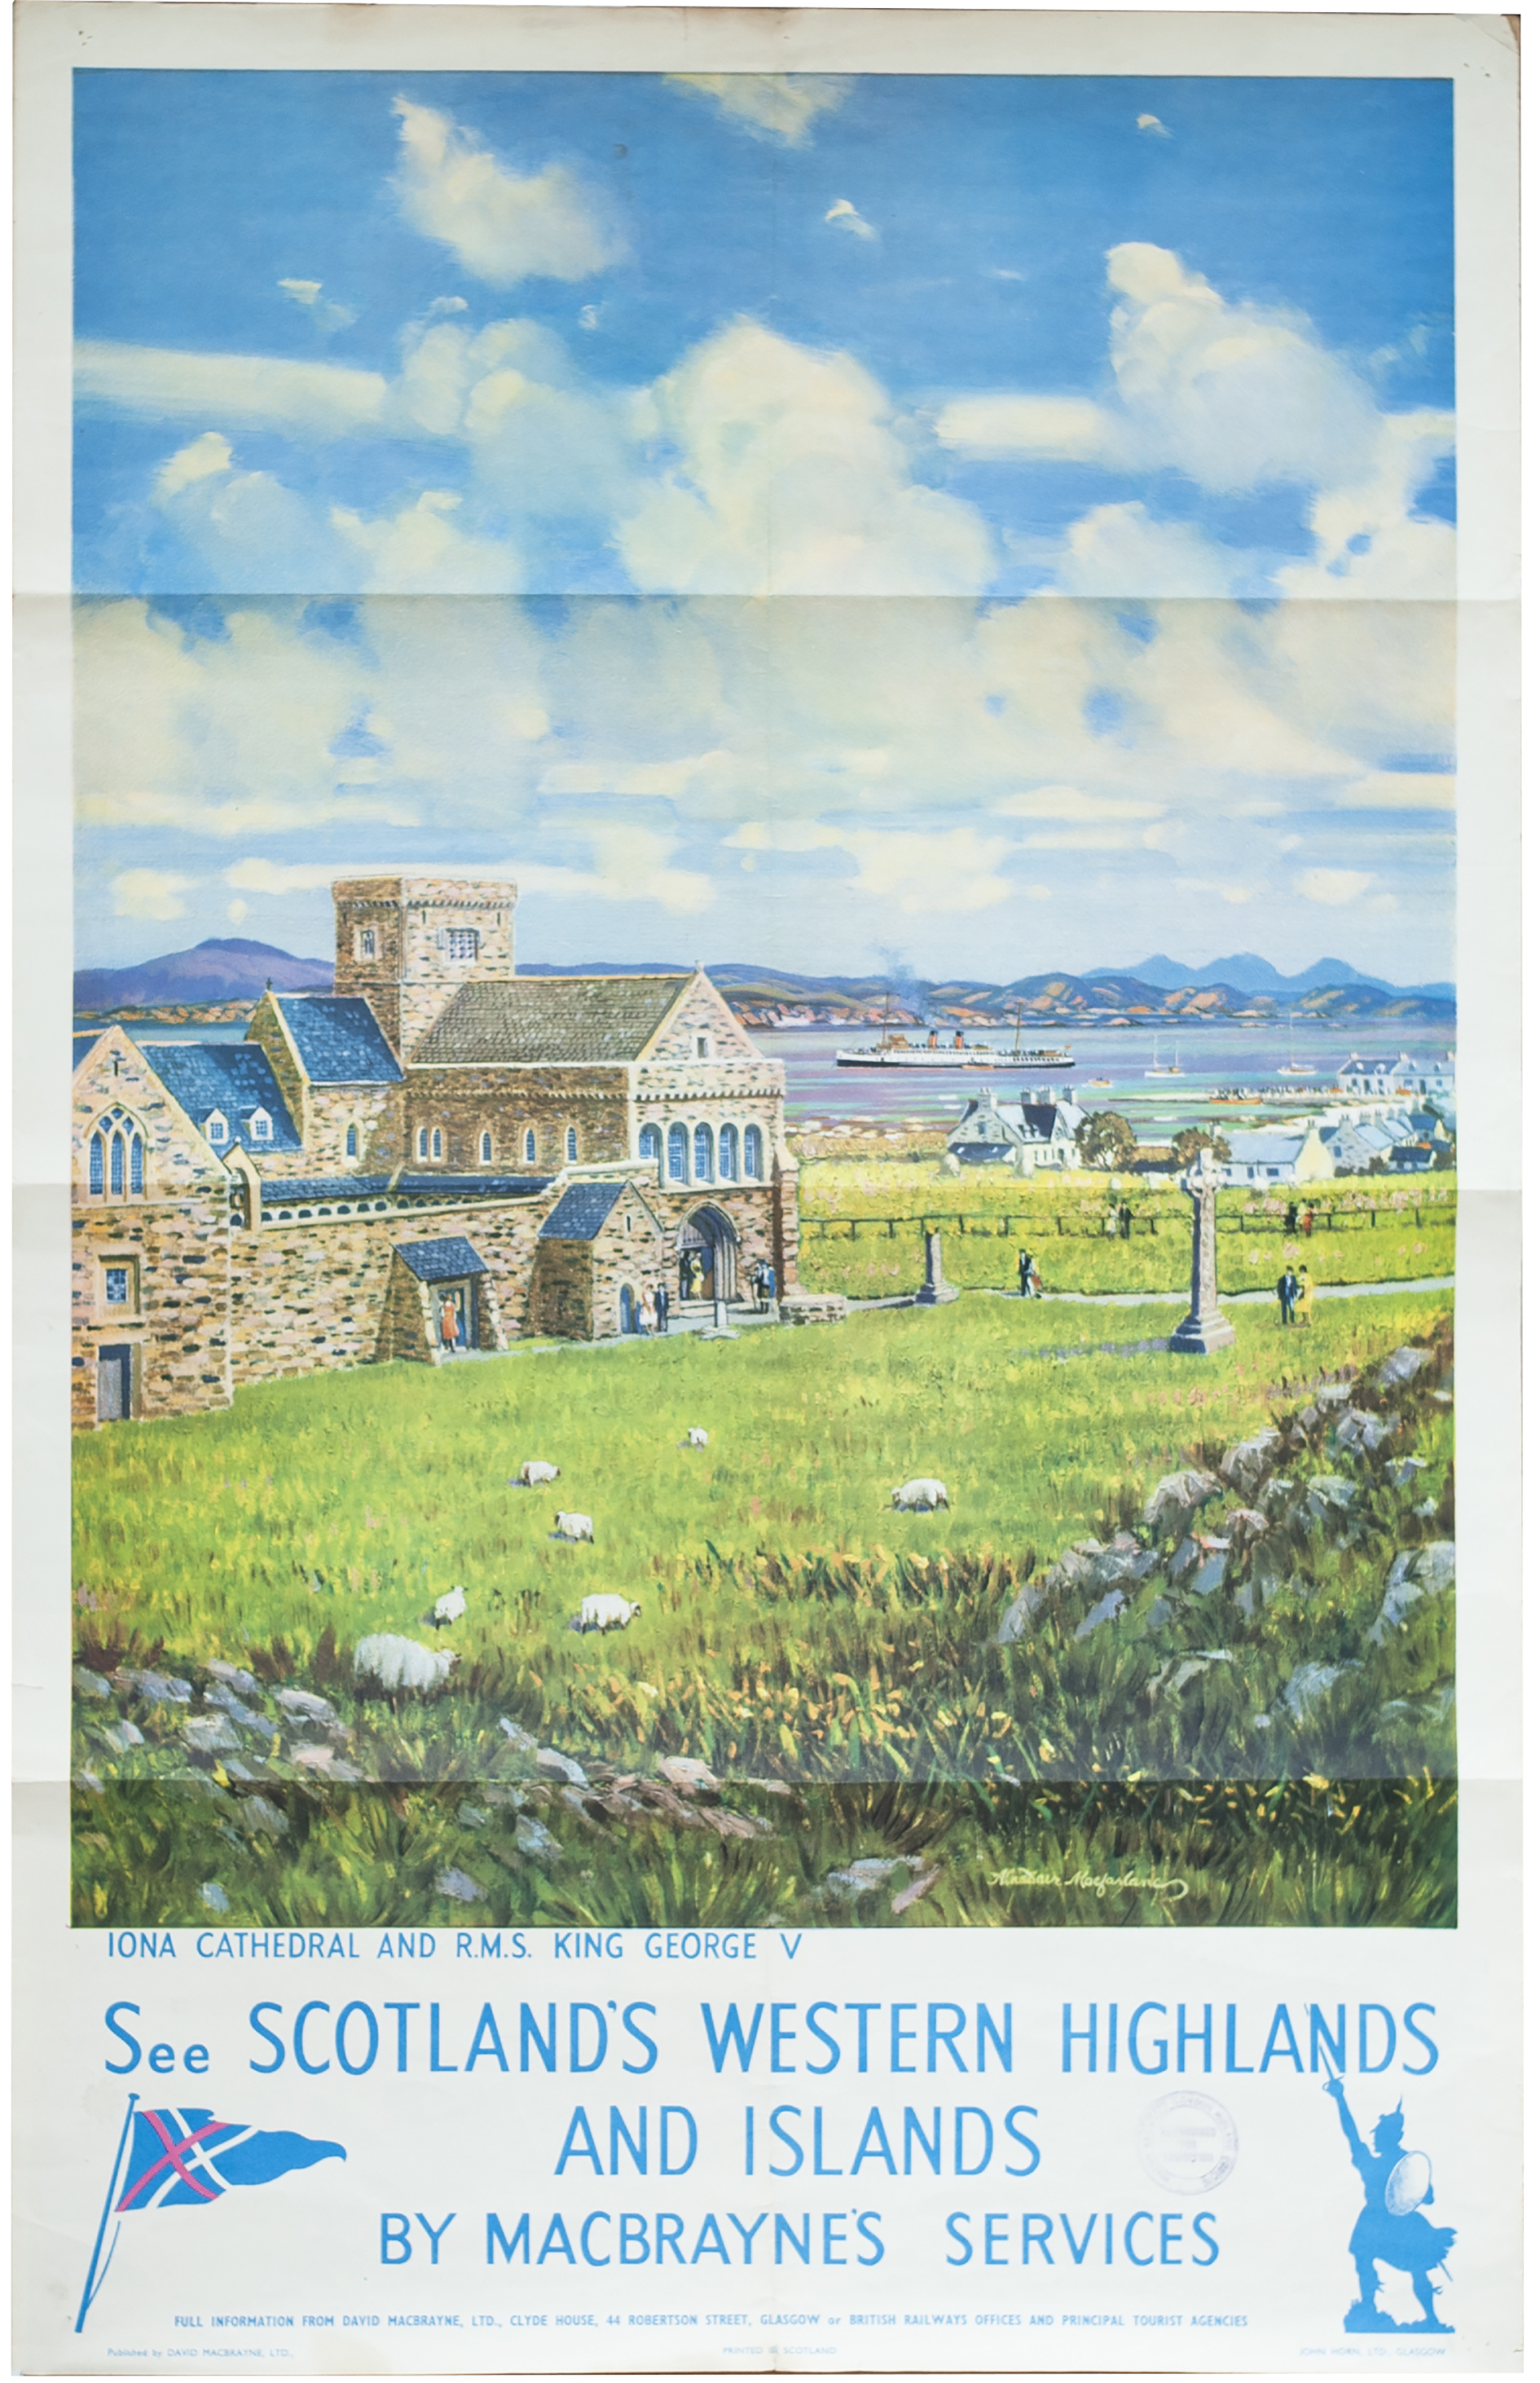 Poster MACBRAYNES SEE SCOTLANDS WESTERN HIGHLANDS AND ISLANDS BY MACBRAYNES SERVICES by Alasdair